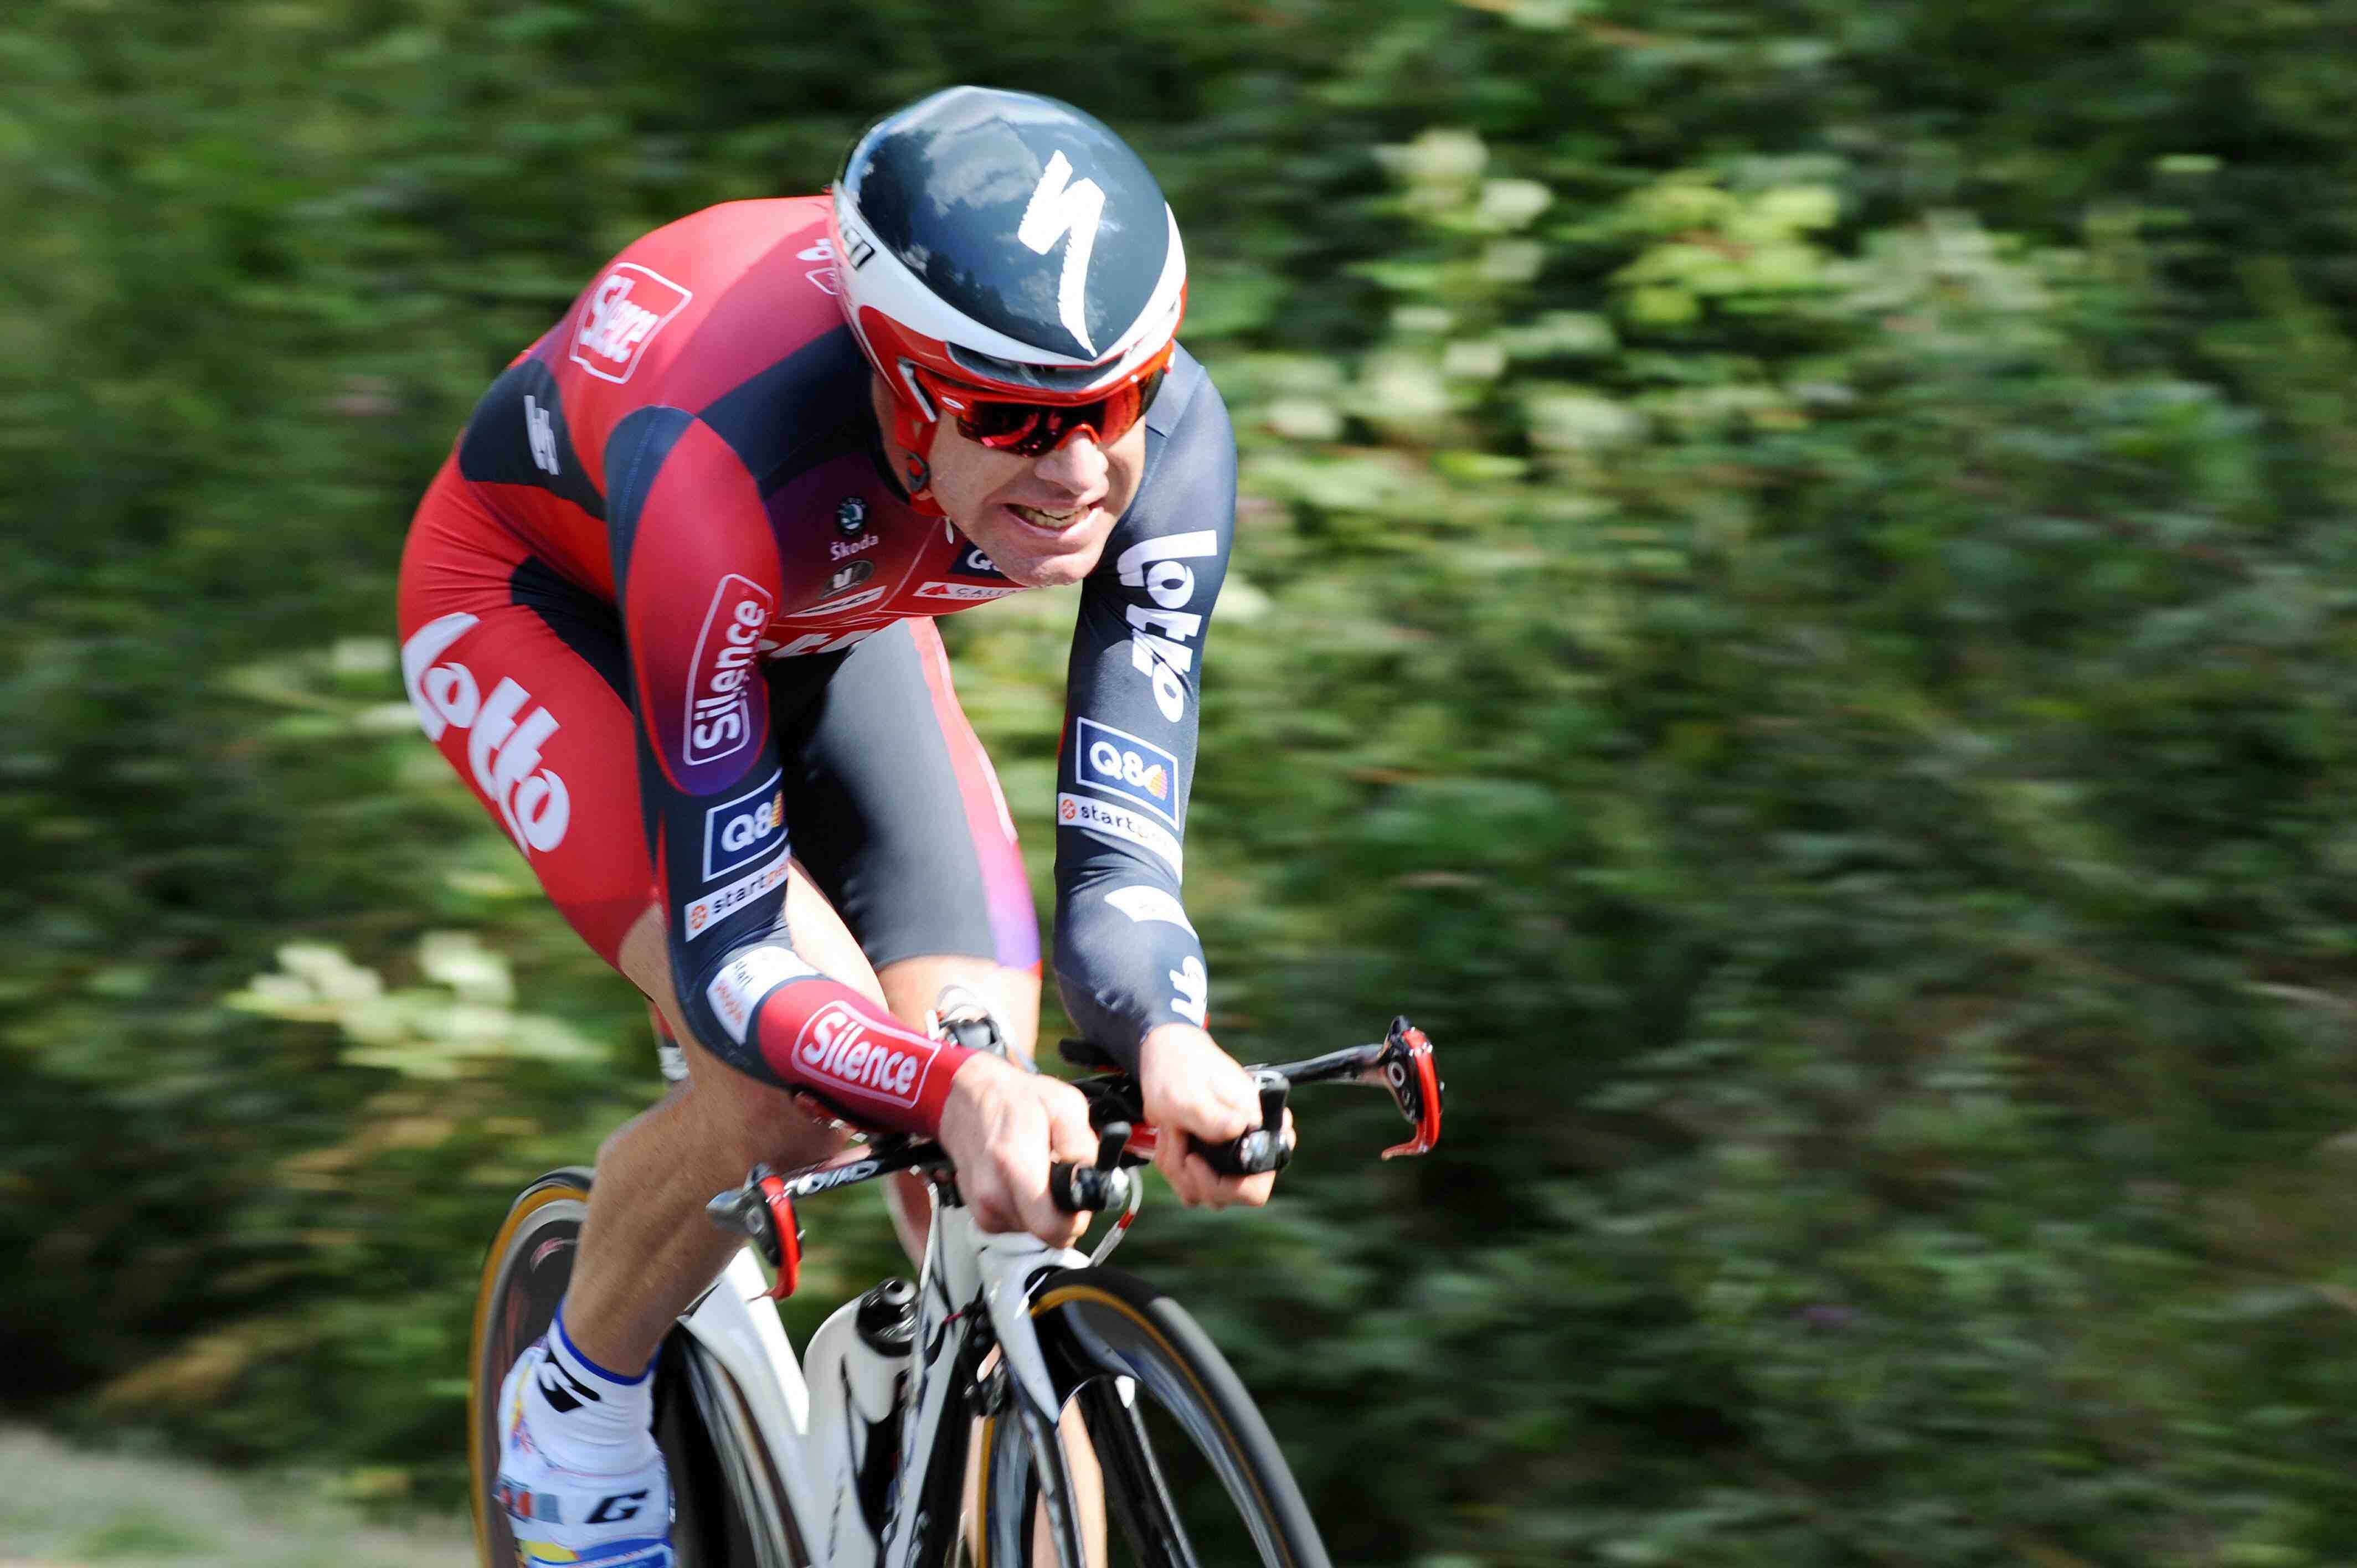 Silence-Lotto's Cadel Evans races in the Tour's final time trial July 26.